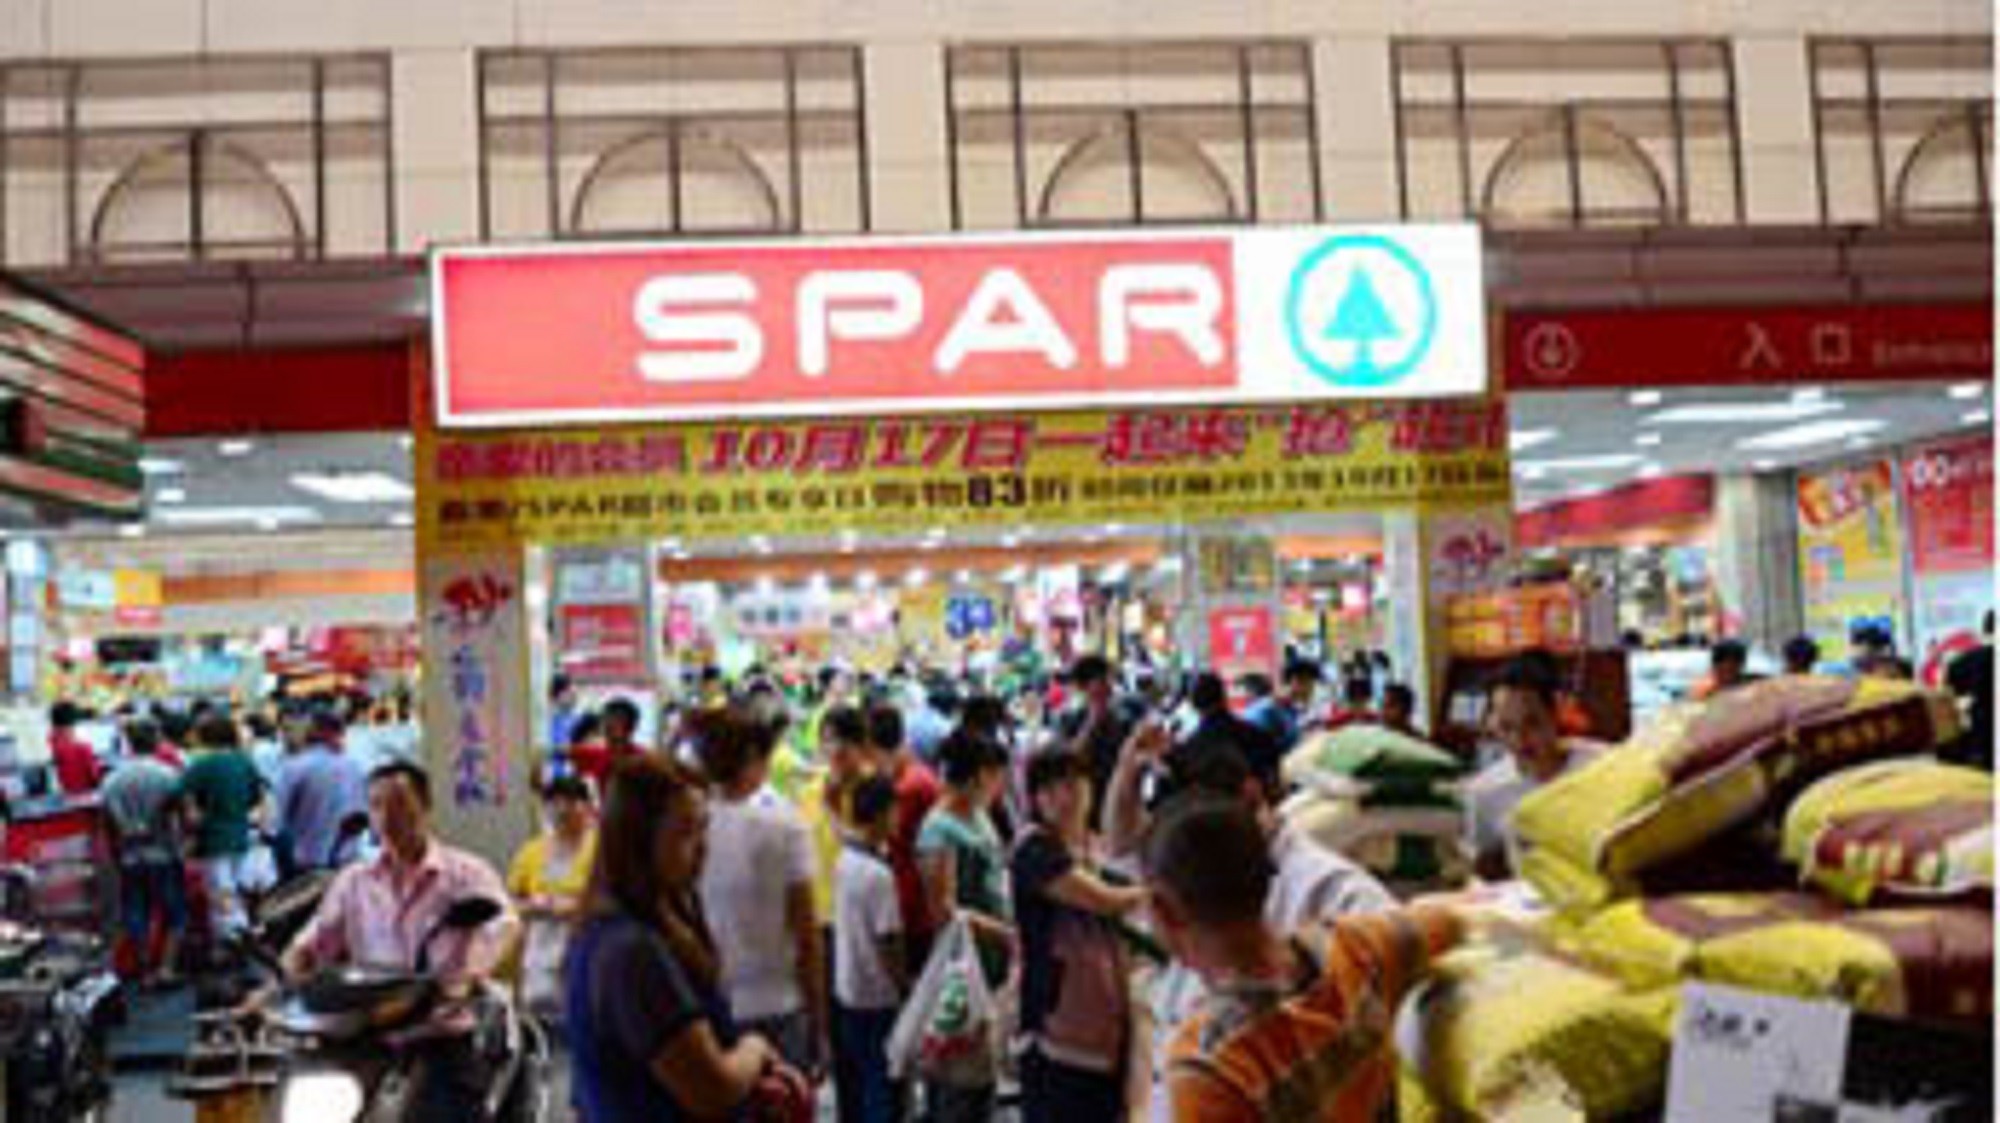 SPAR GD membership day promotion